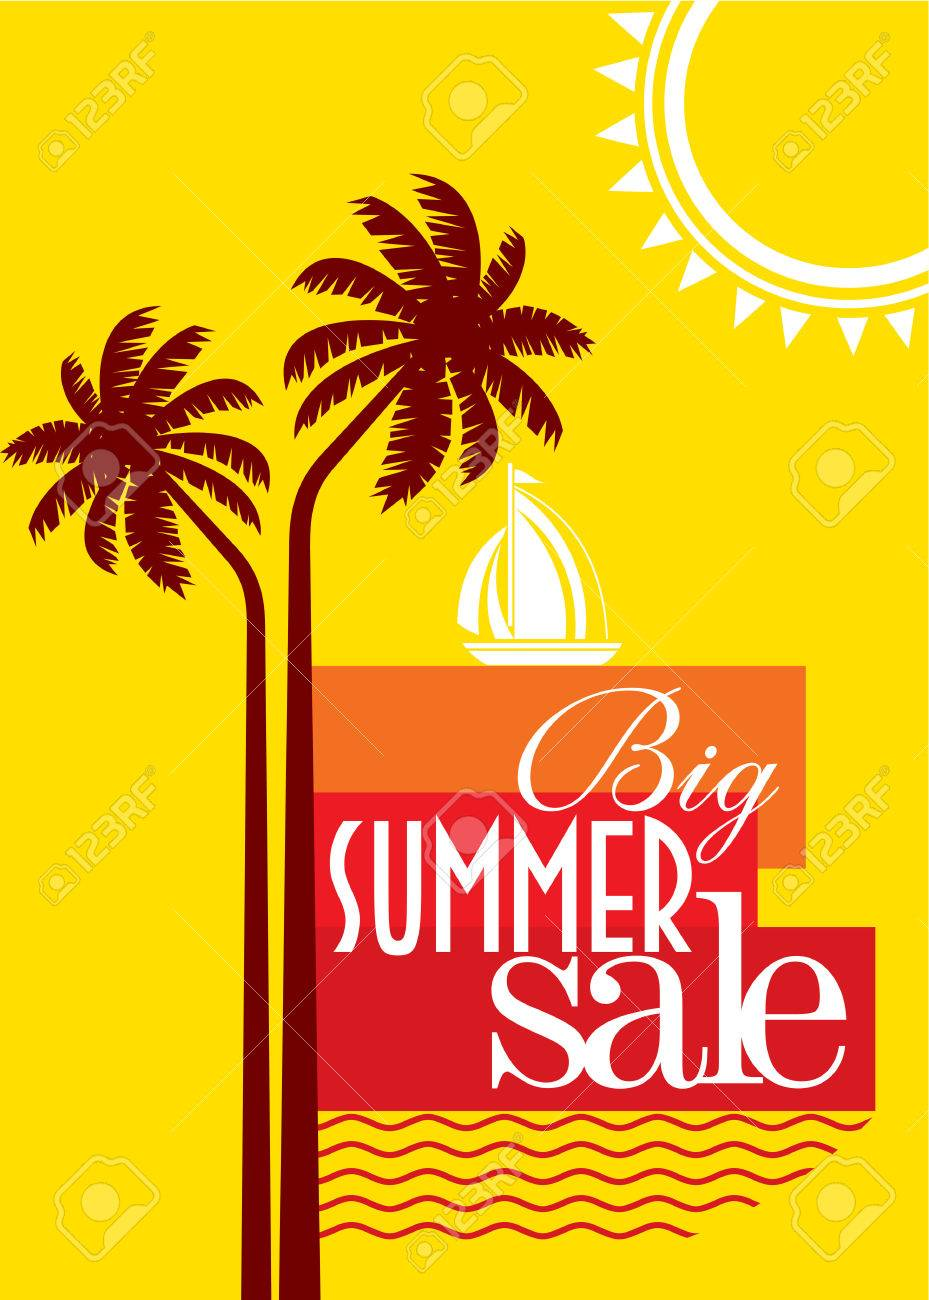 sale shopping background and label for business promotion - 39943774